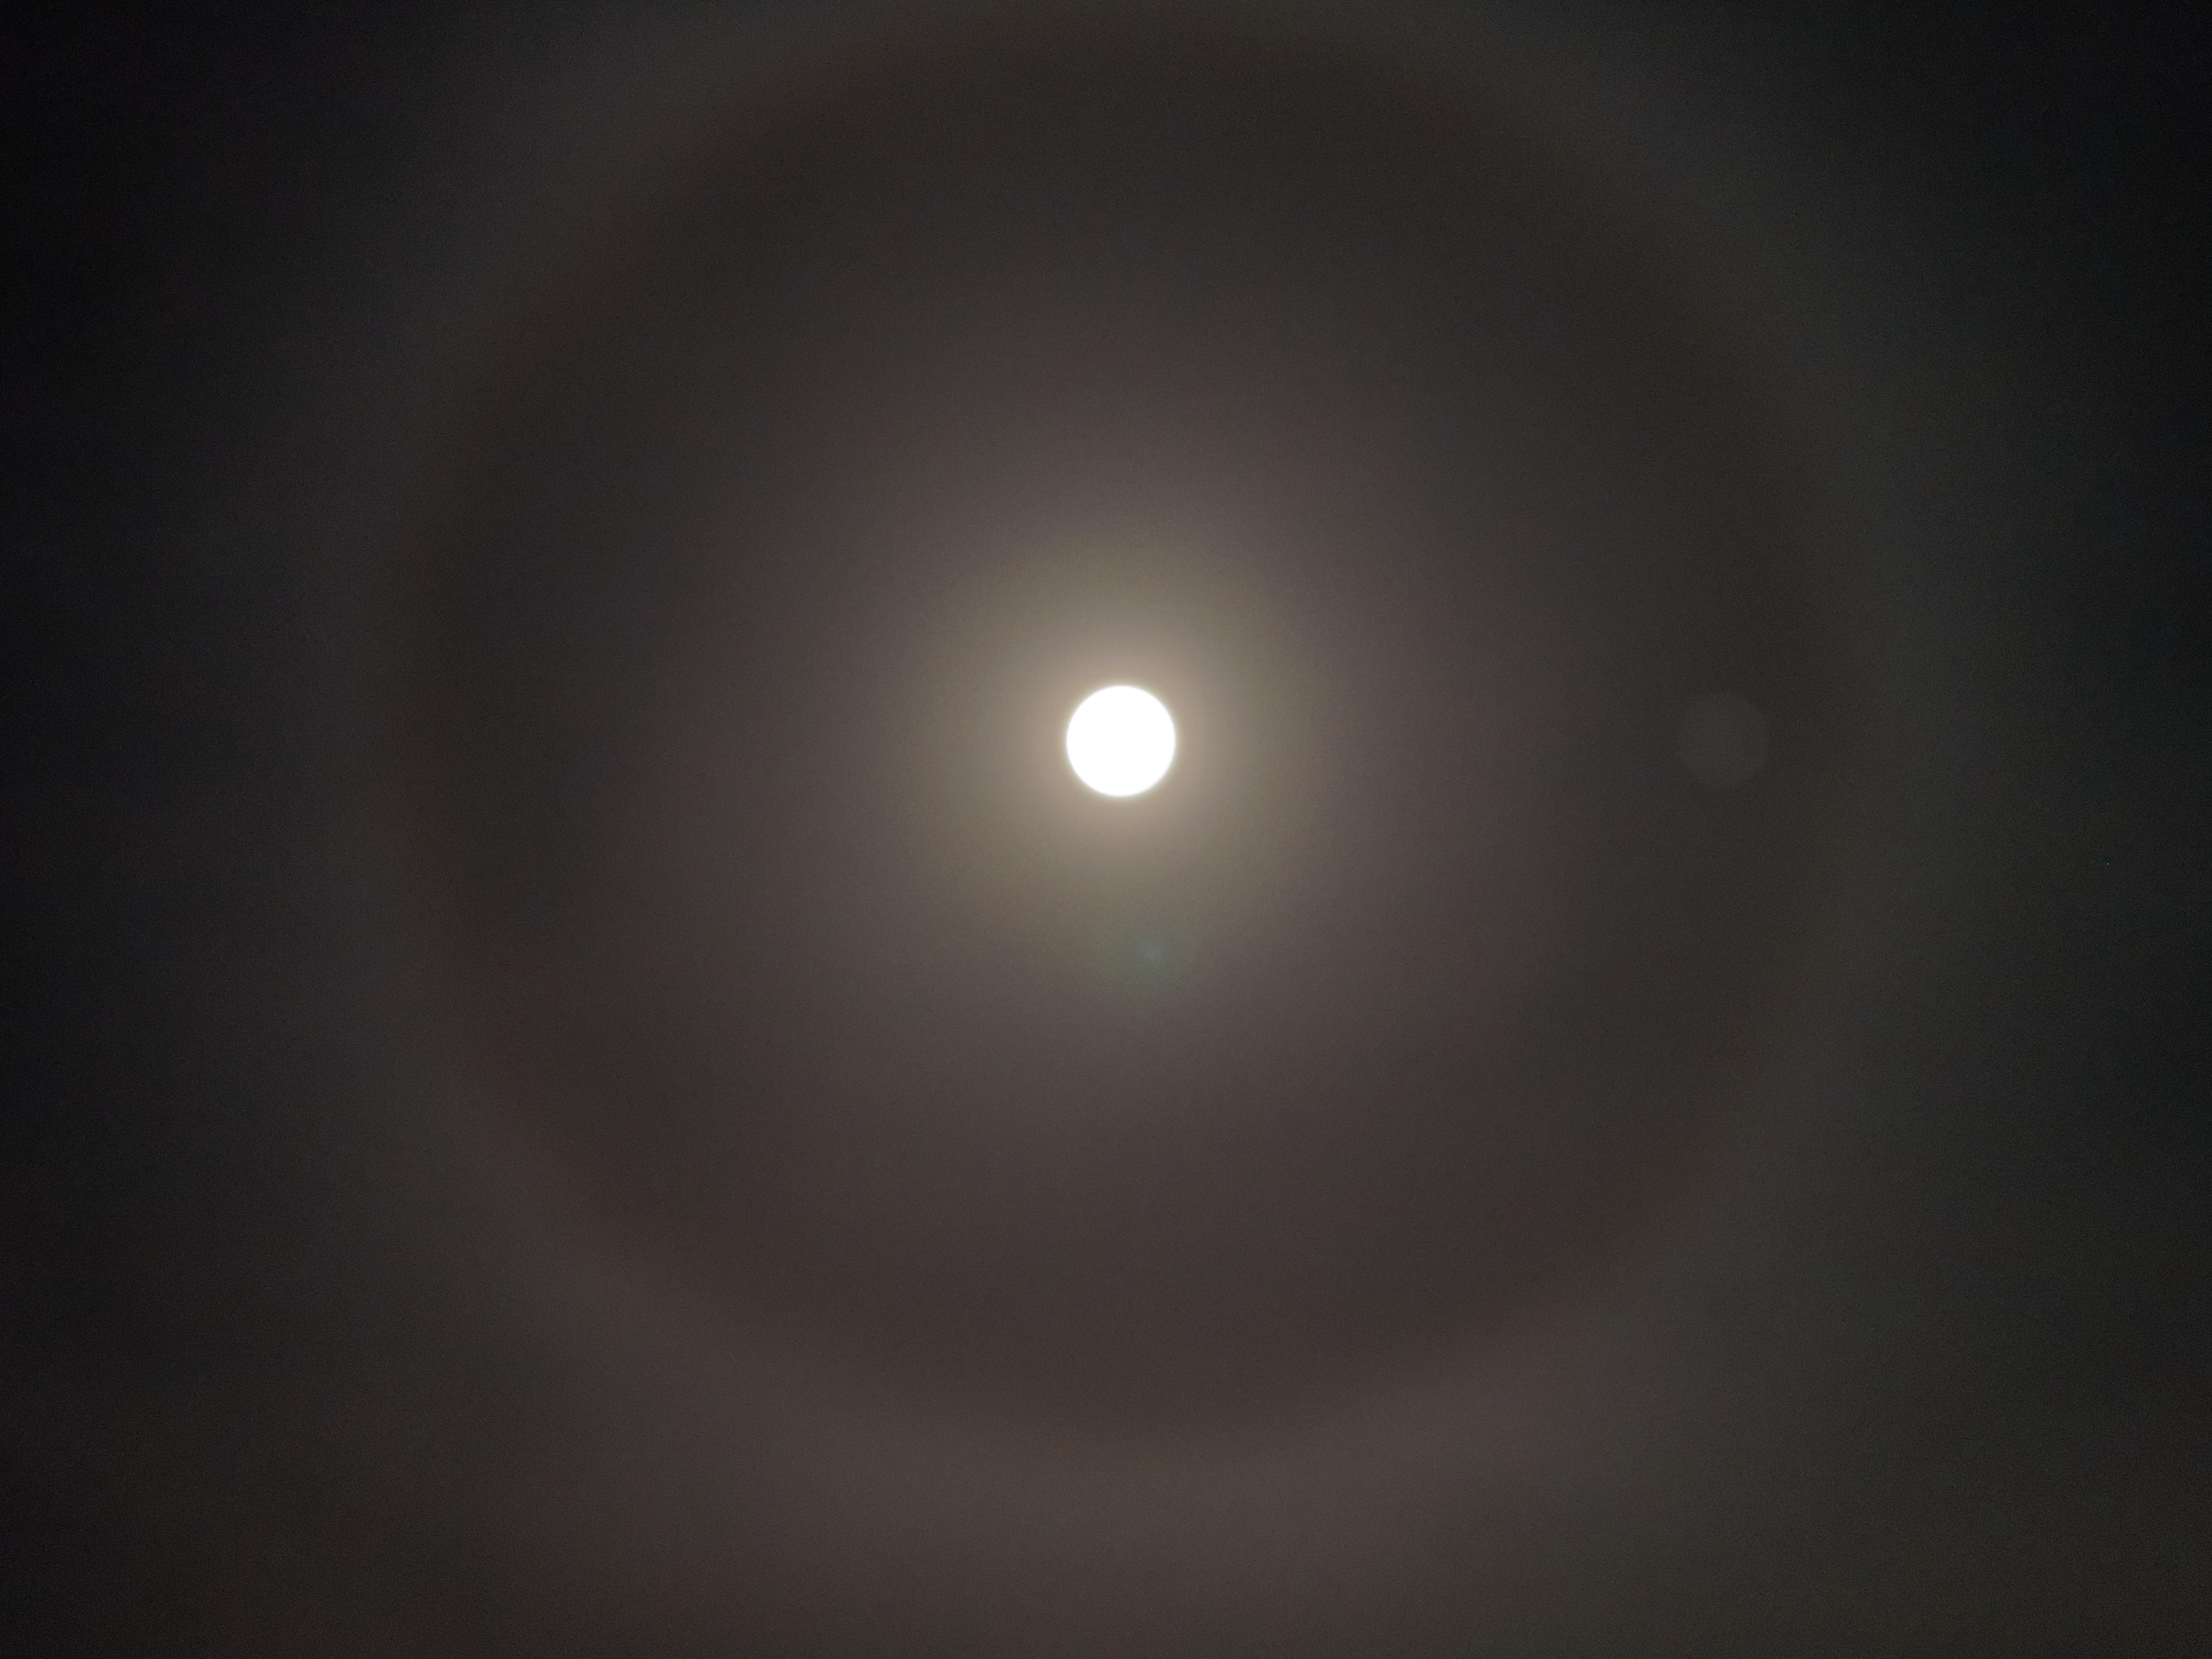 Moon-halo-1.jpeg